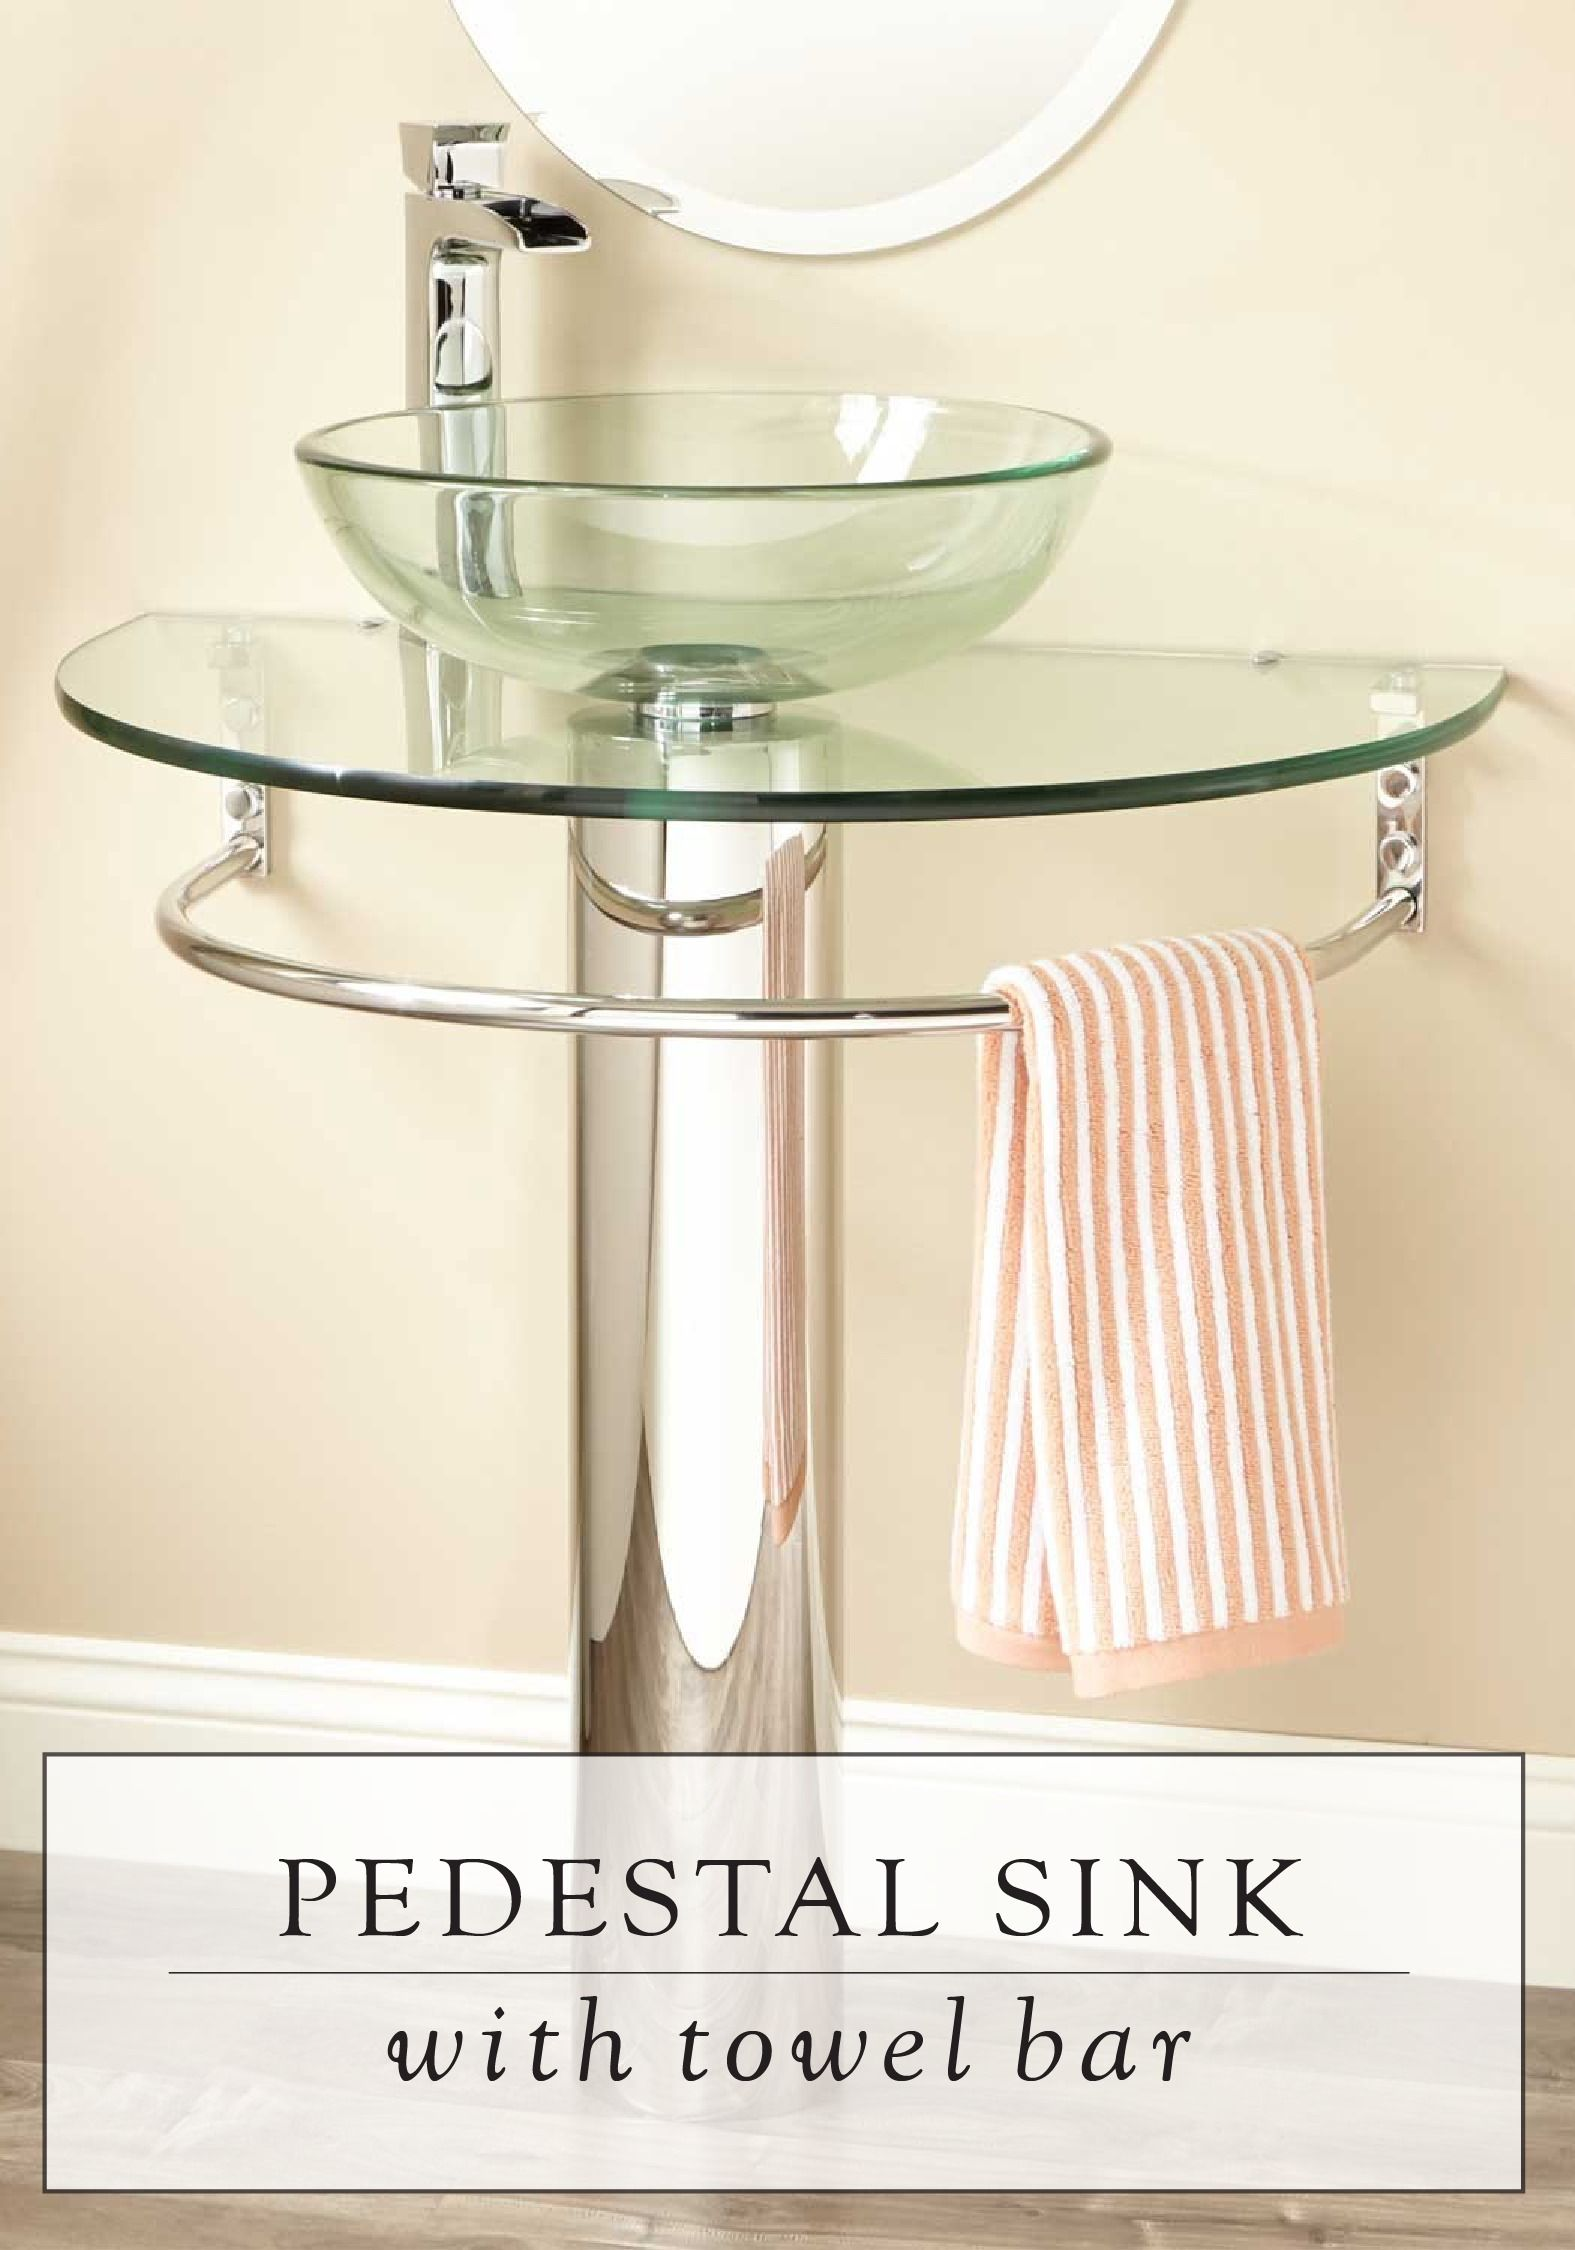 The Design Of This Glass Pedestal Sink Is Modern And Functional